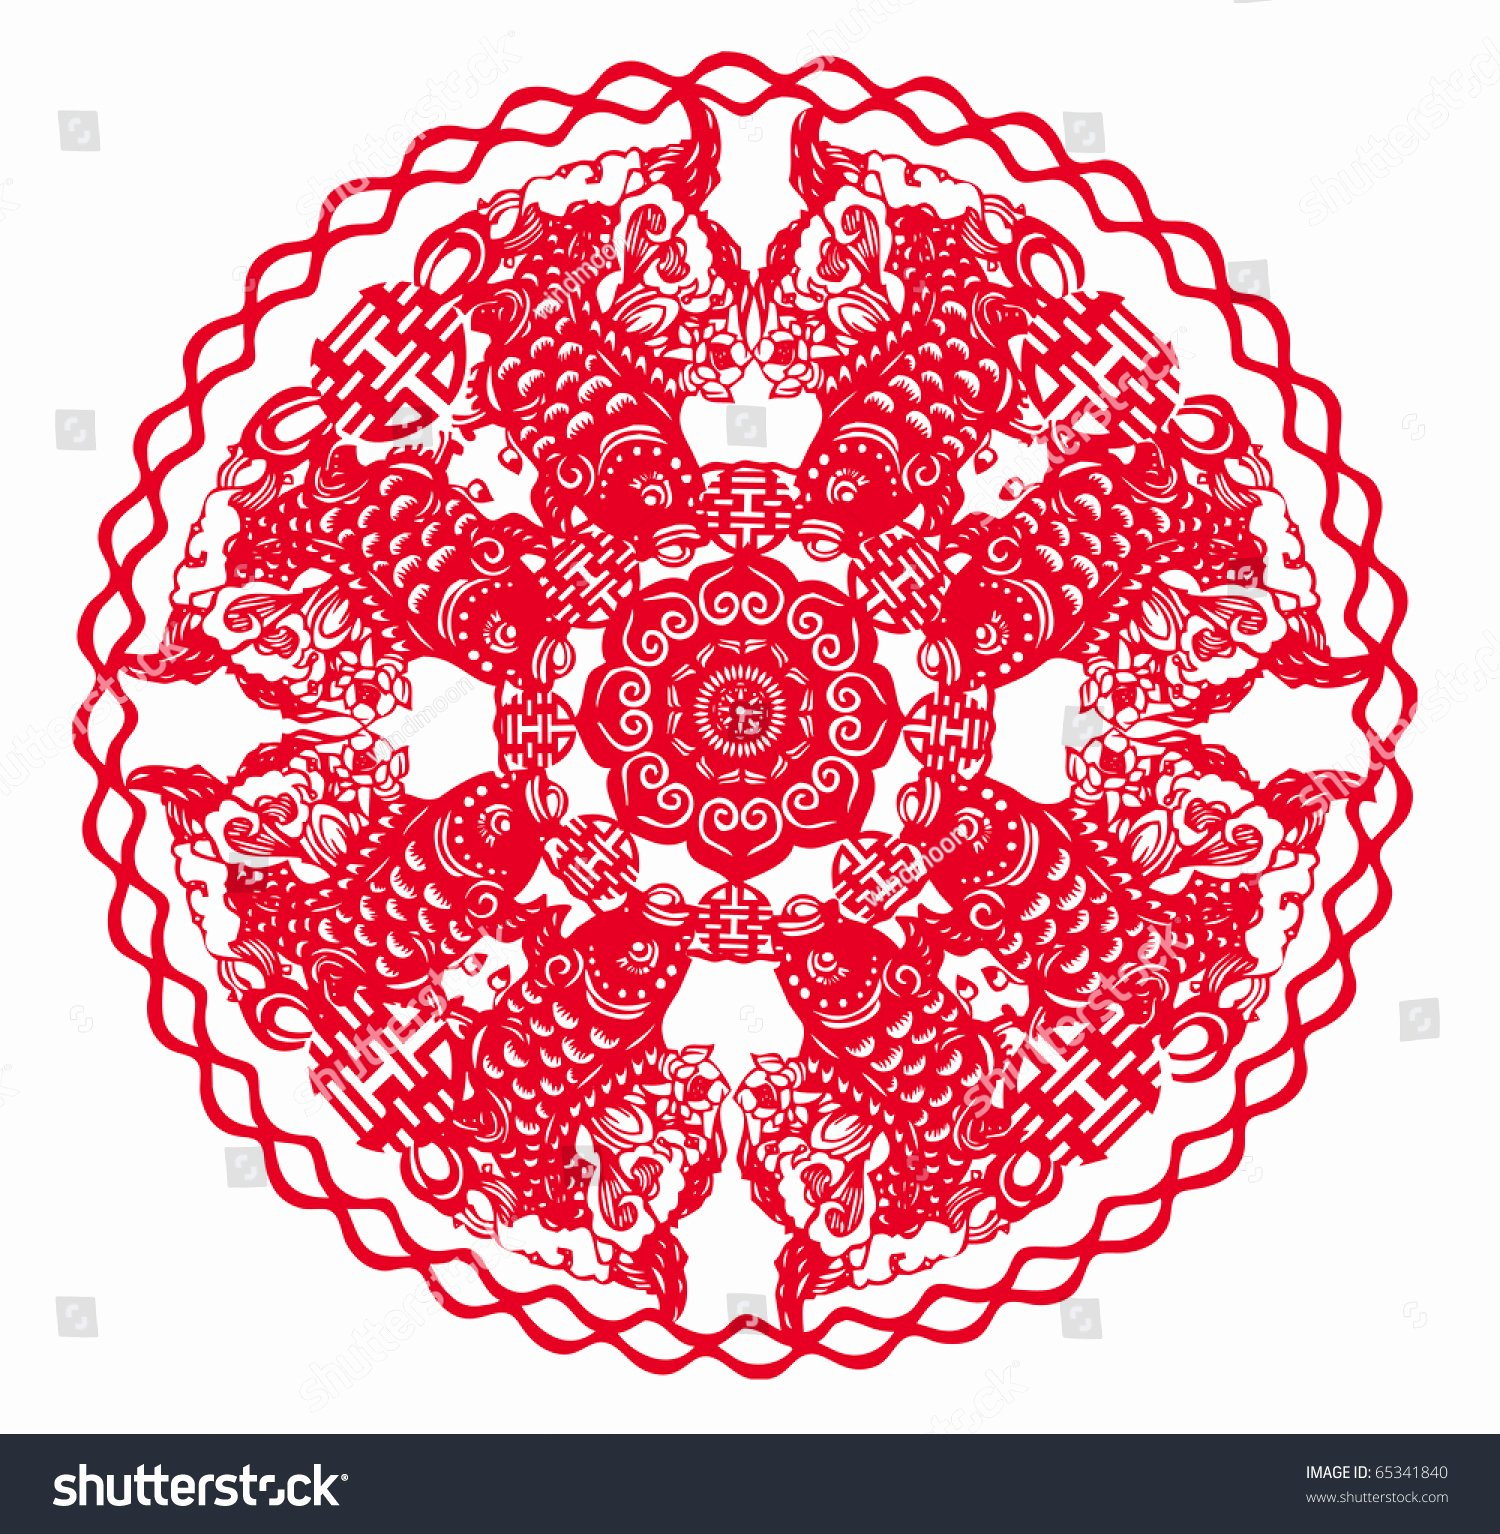 Chinese Paper Cutting Template New Chinese Paper Cutting Fish Patterns Stock Illustration